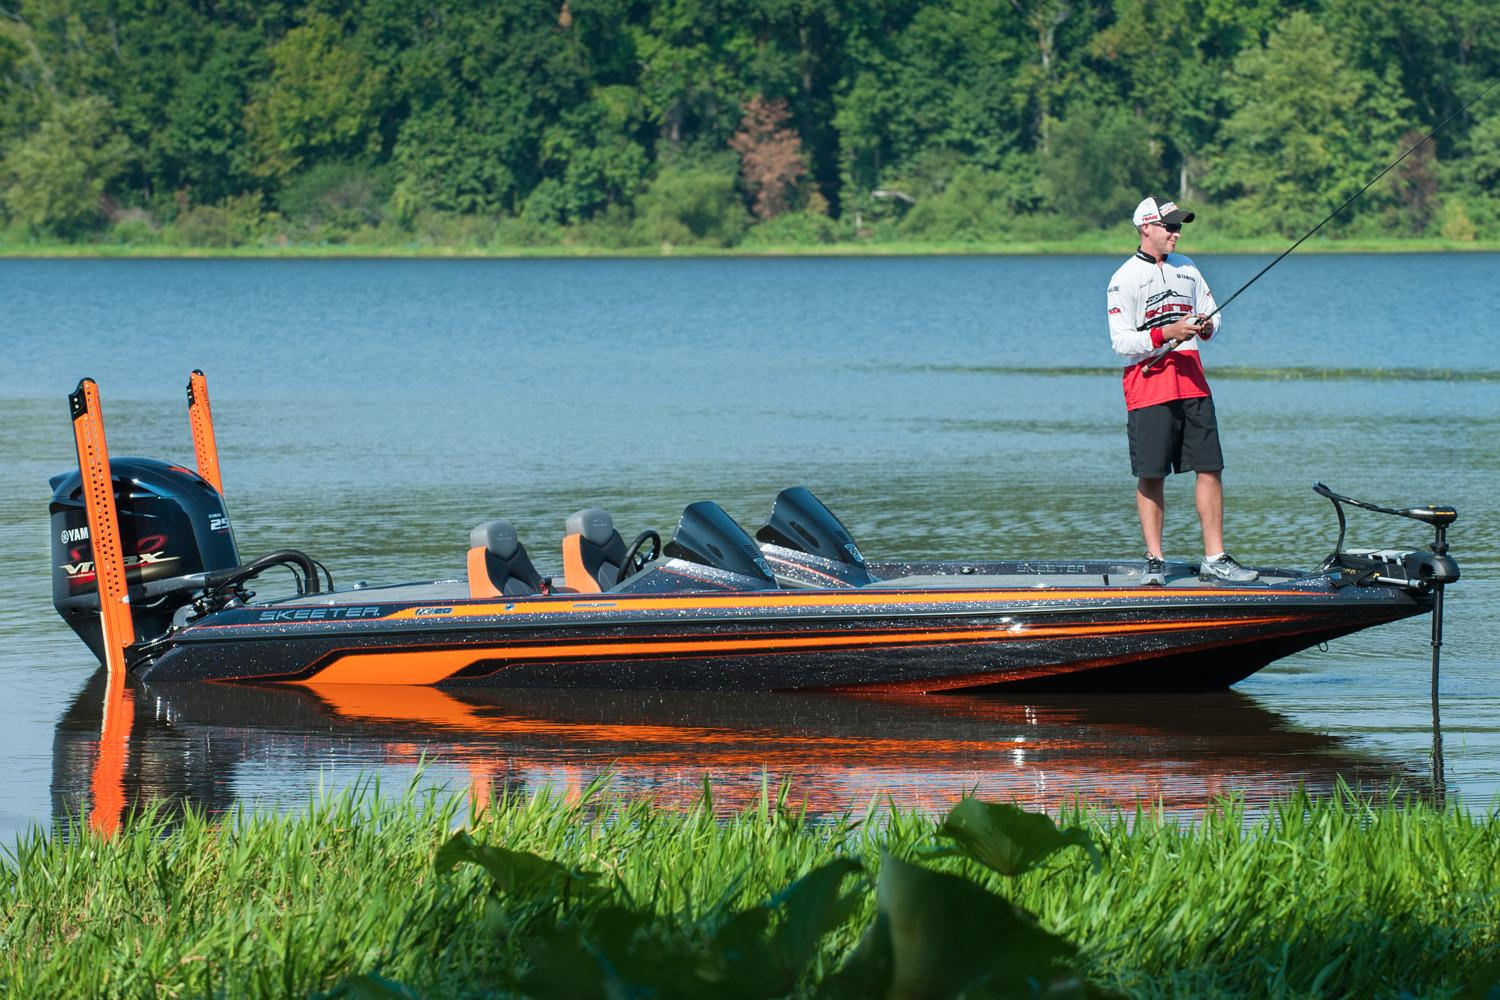 New 2018 Skeeter FX 20 Limited Edition Power Boats ...